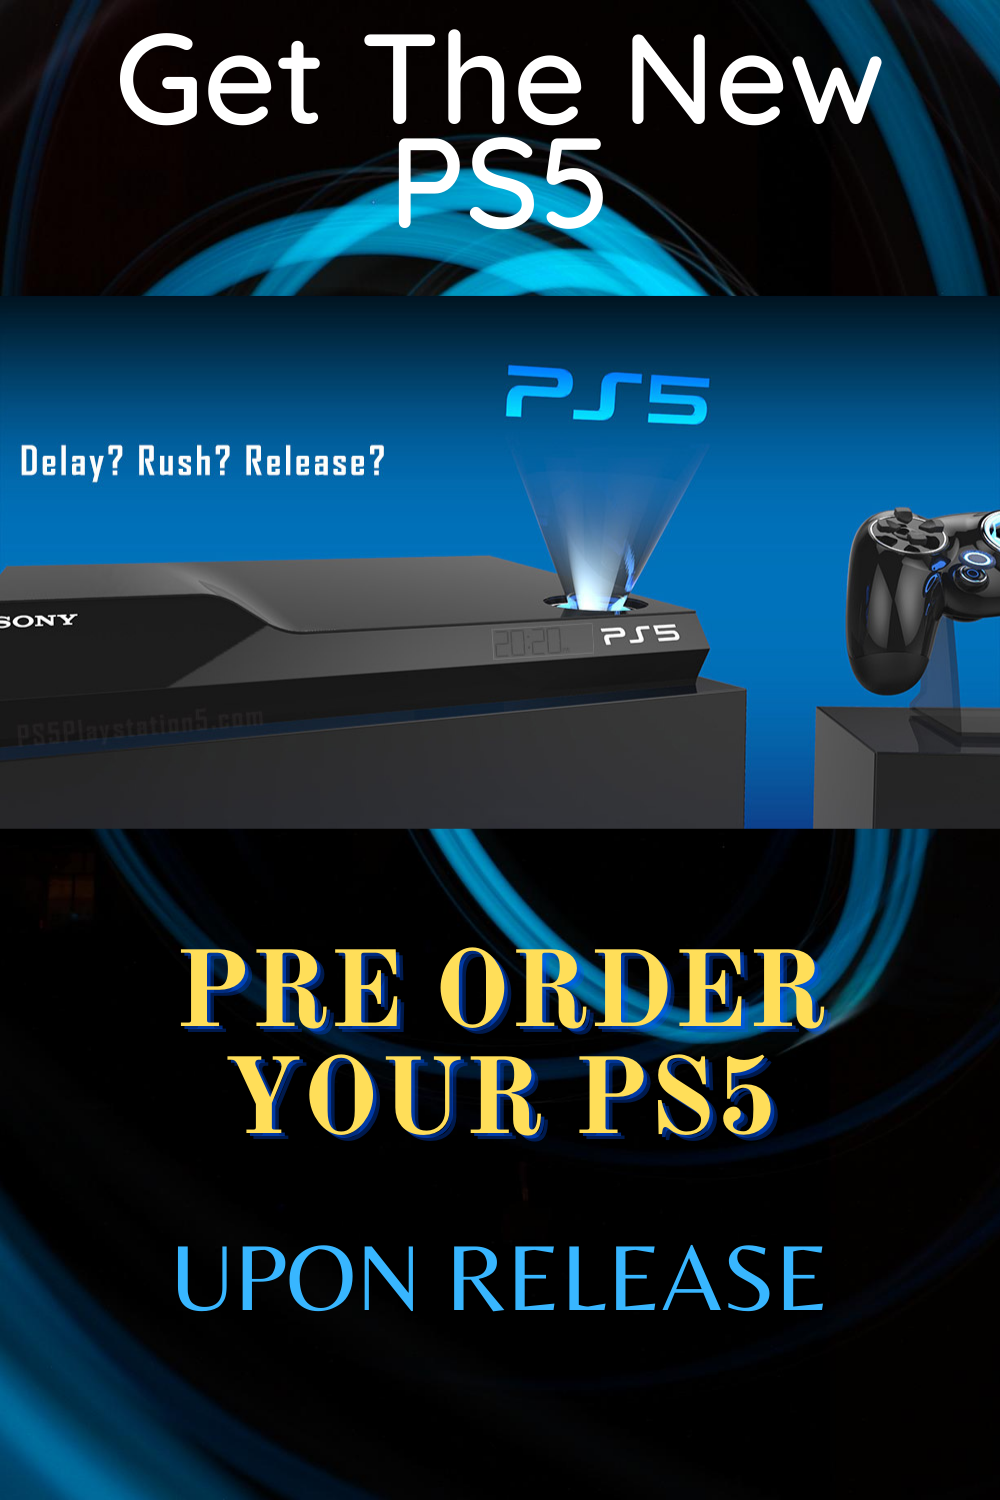 Get the Sony PS5! in 2020 Release, Amd, News